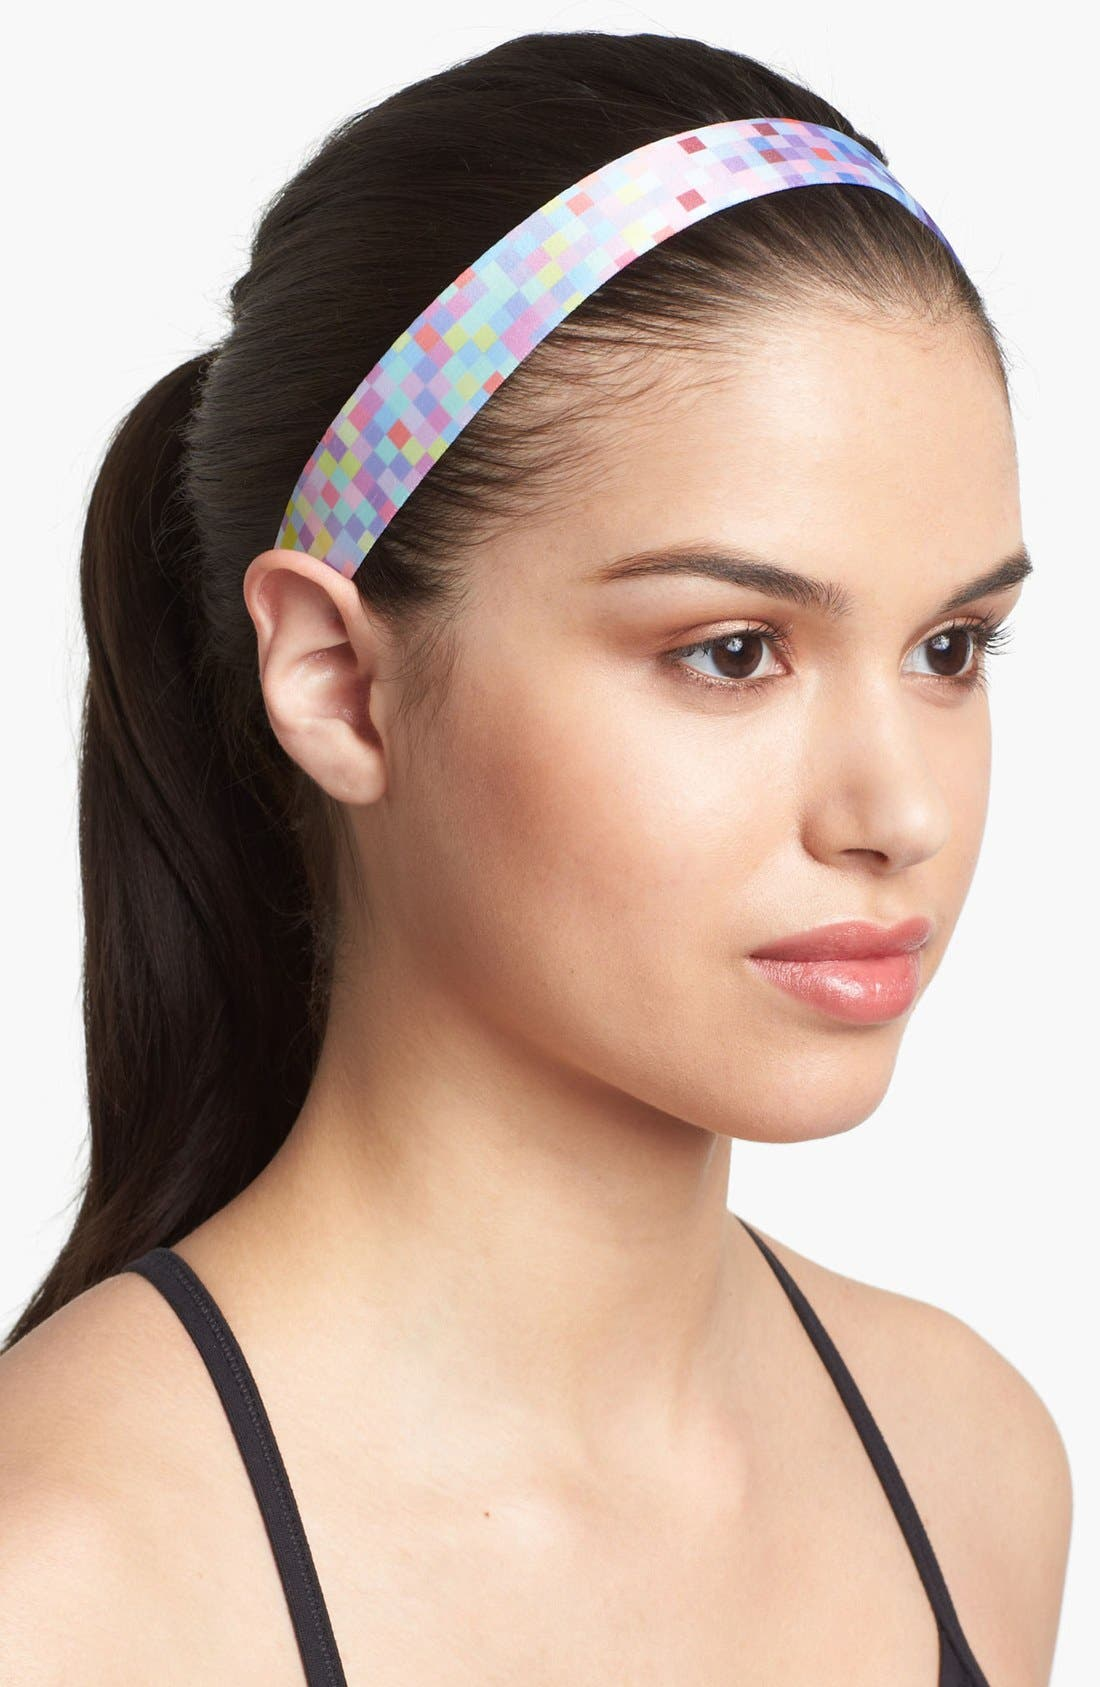 Alternate Image 1 Selected - Sweaty Bands 'Pixel Explosion' Head Wrap